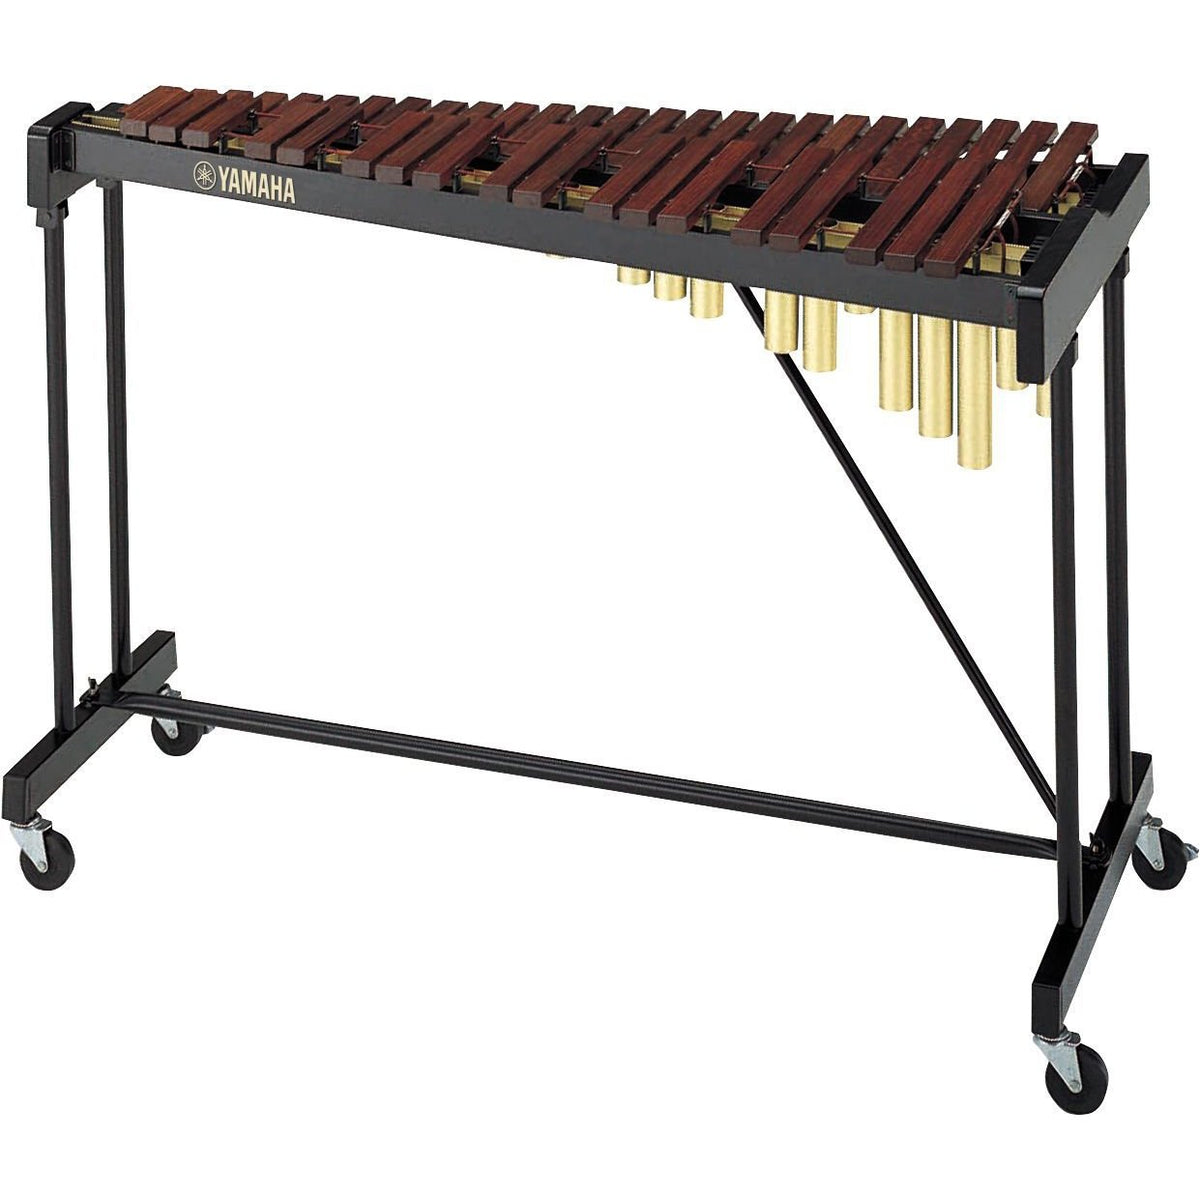 Yamaha - YX-135 - Xylophone (3 1/2-Octave)-Percussion-Yamaha-Music Elements